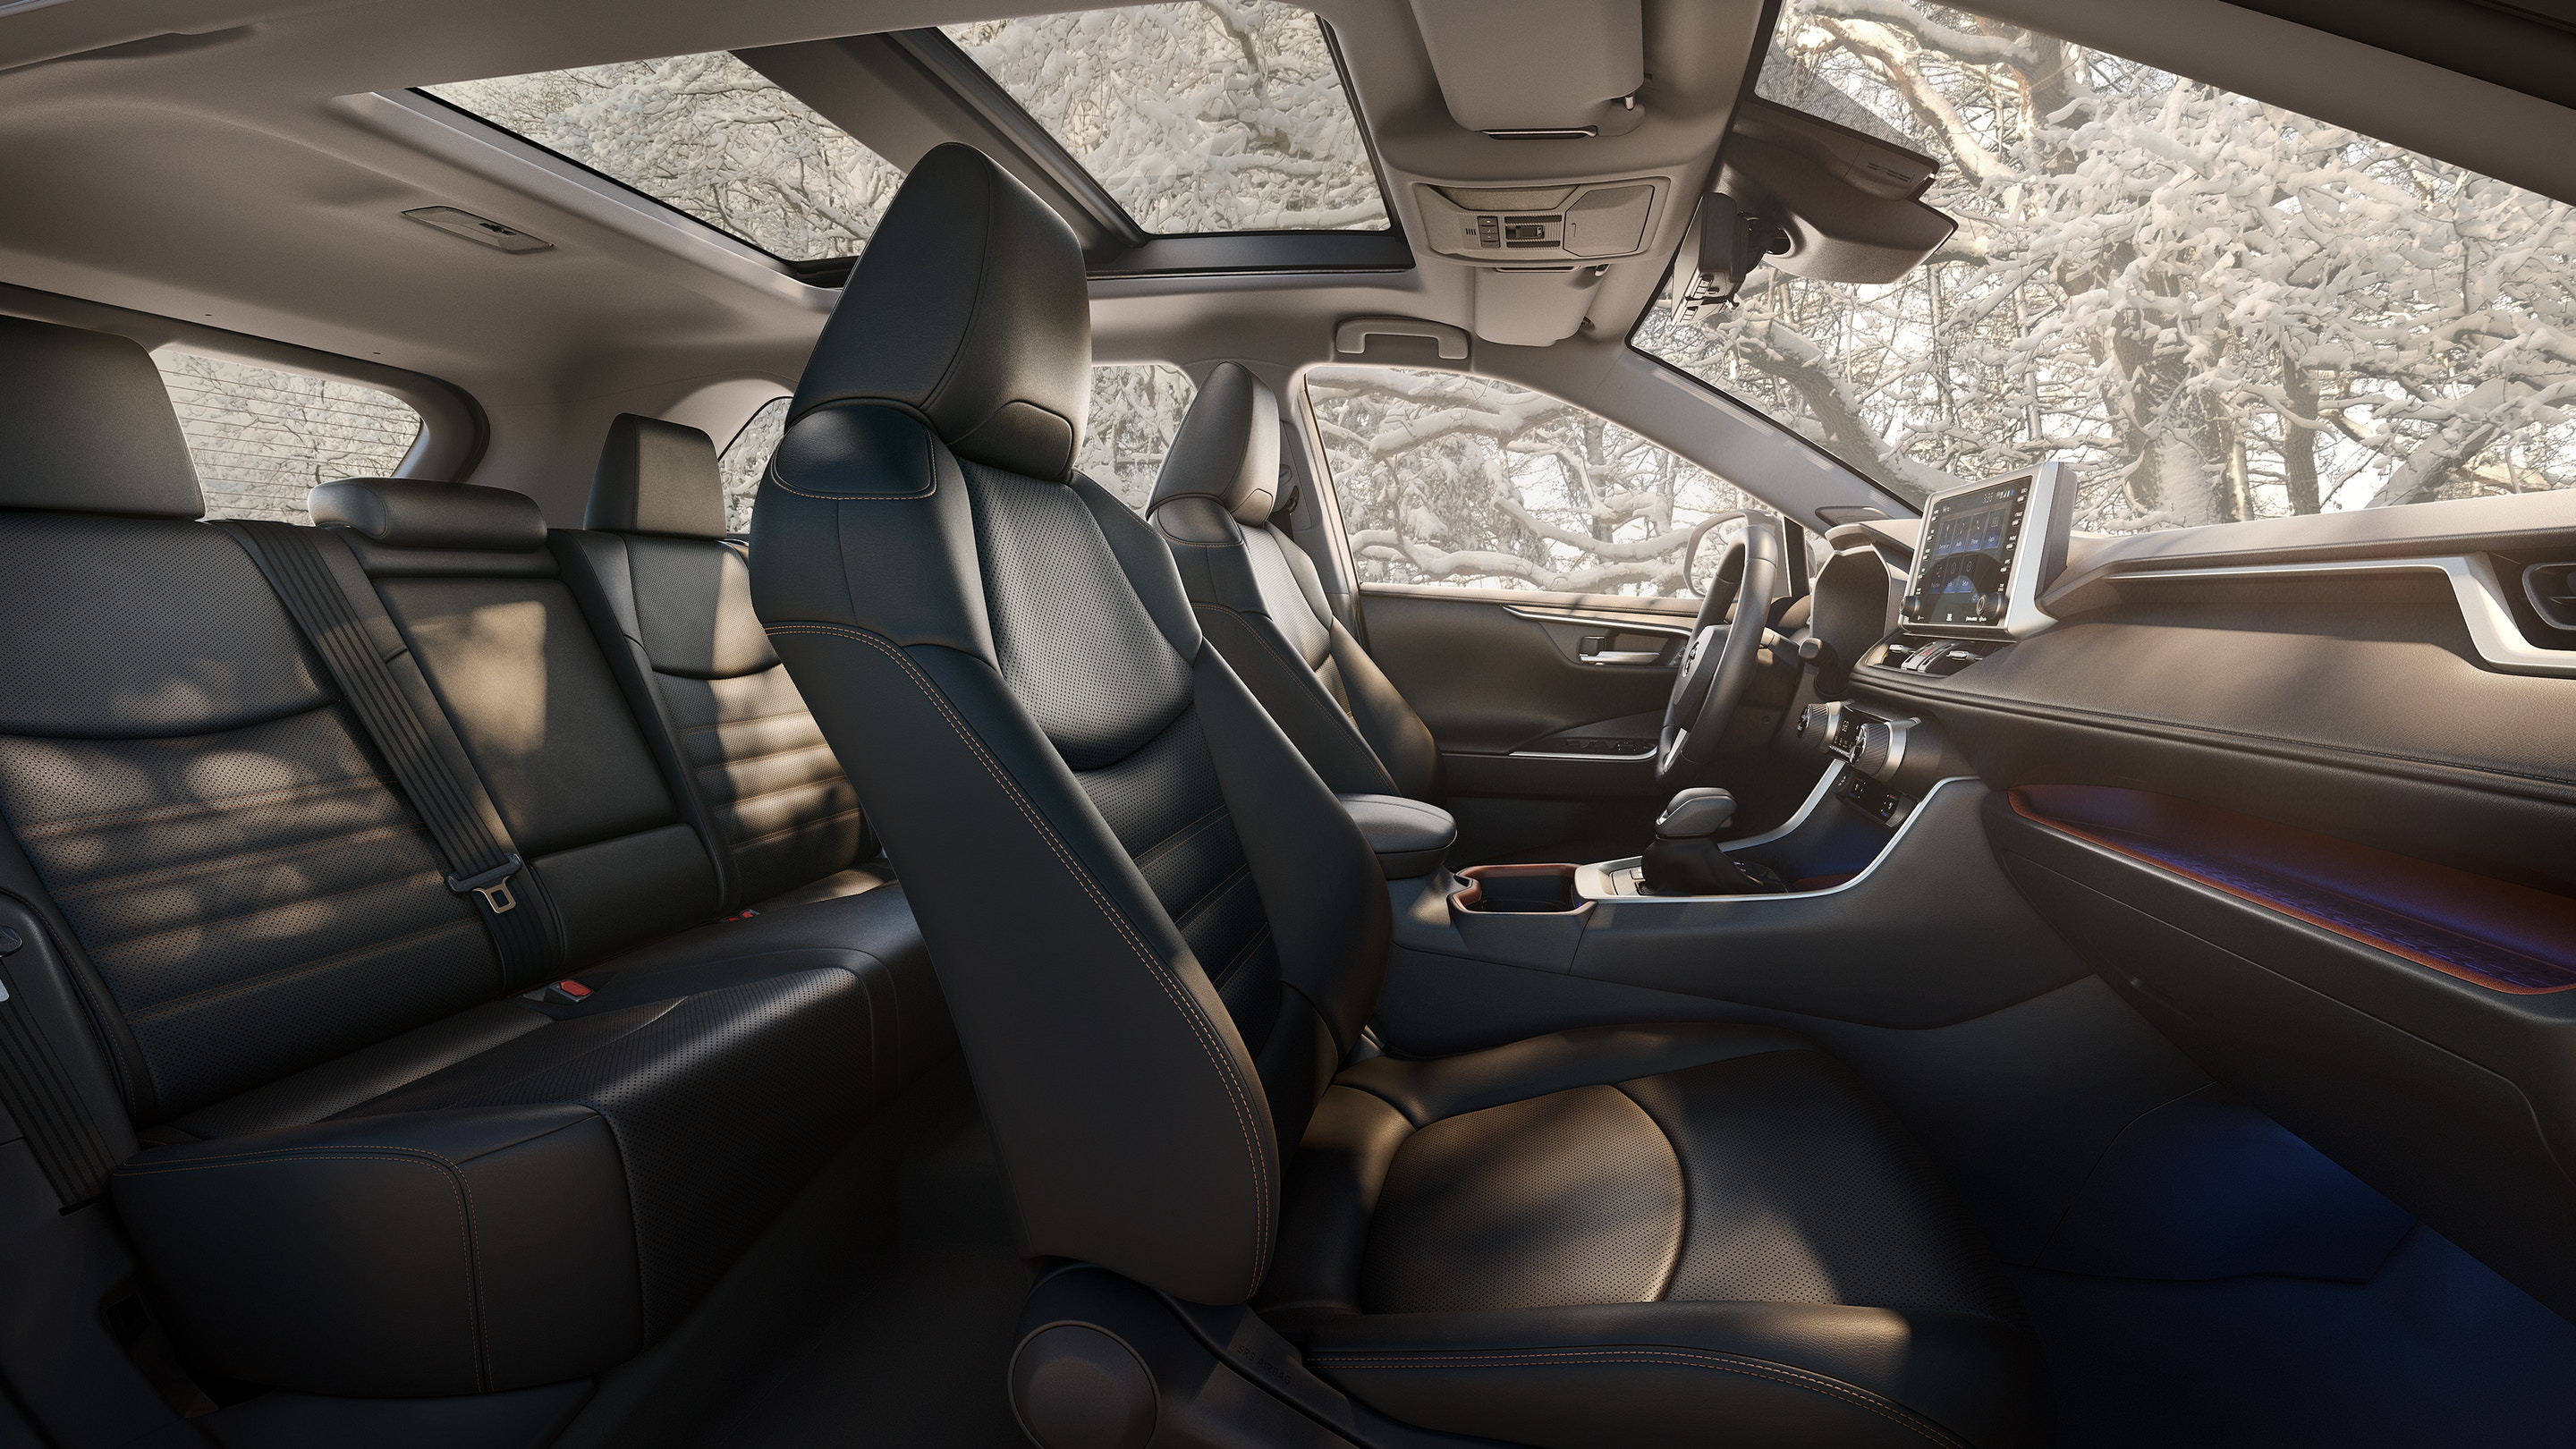 Ride With Peace of Mind in the Secure 2019 RAV4